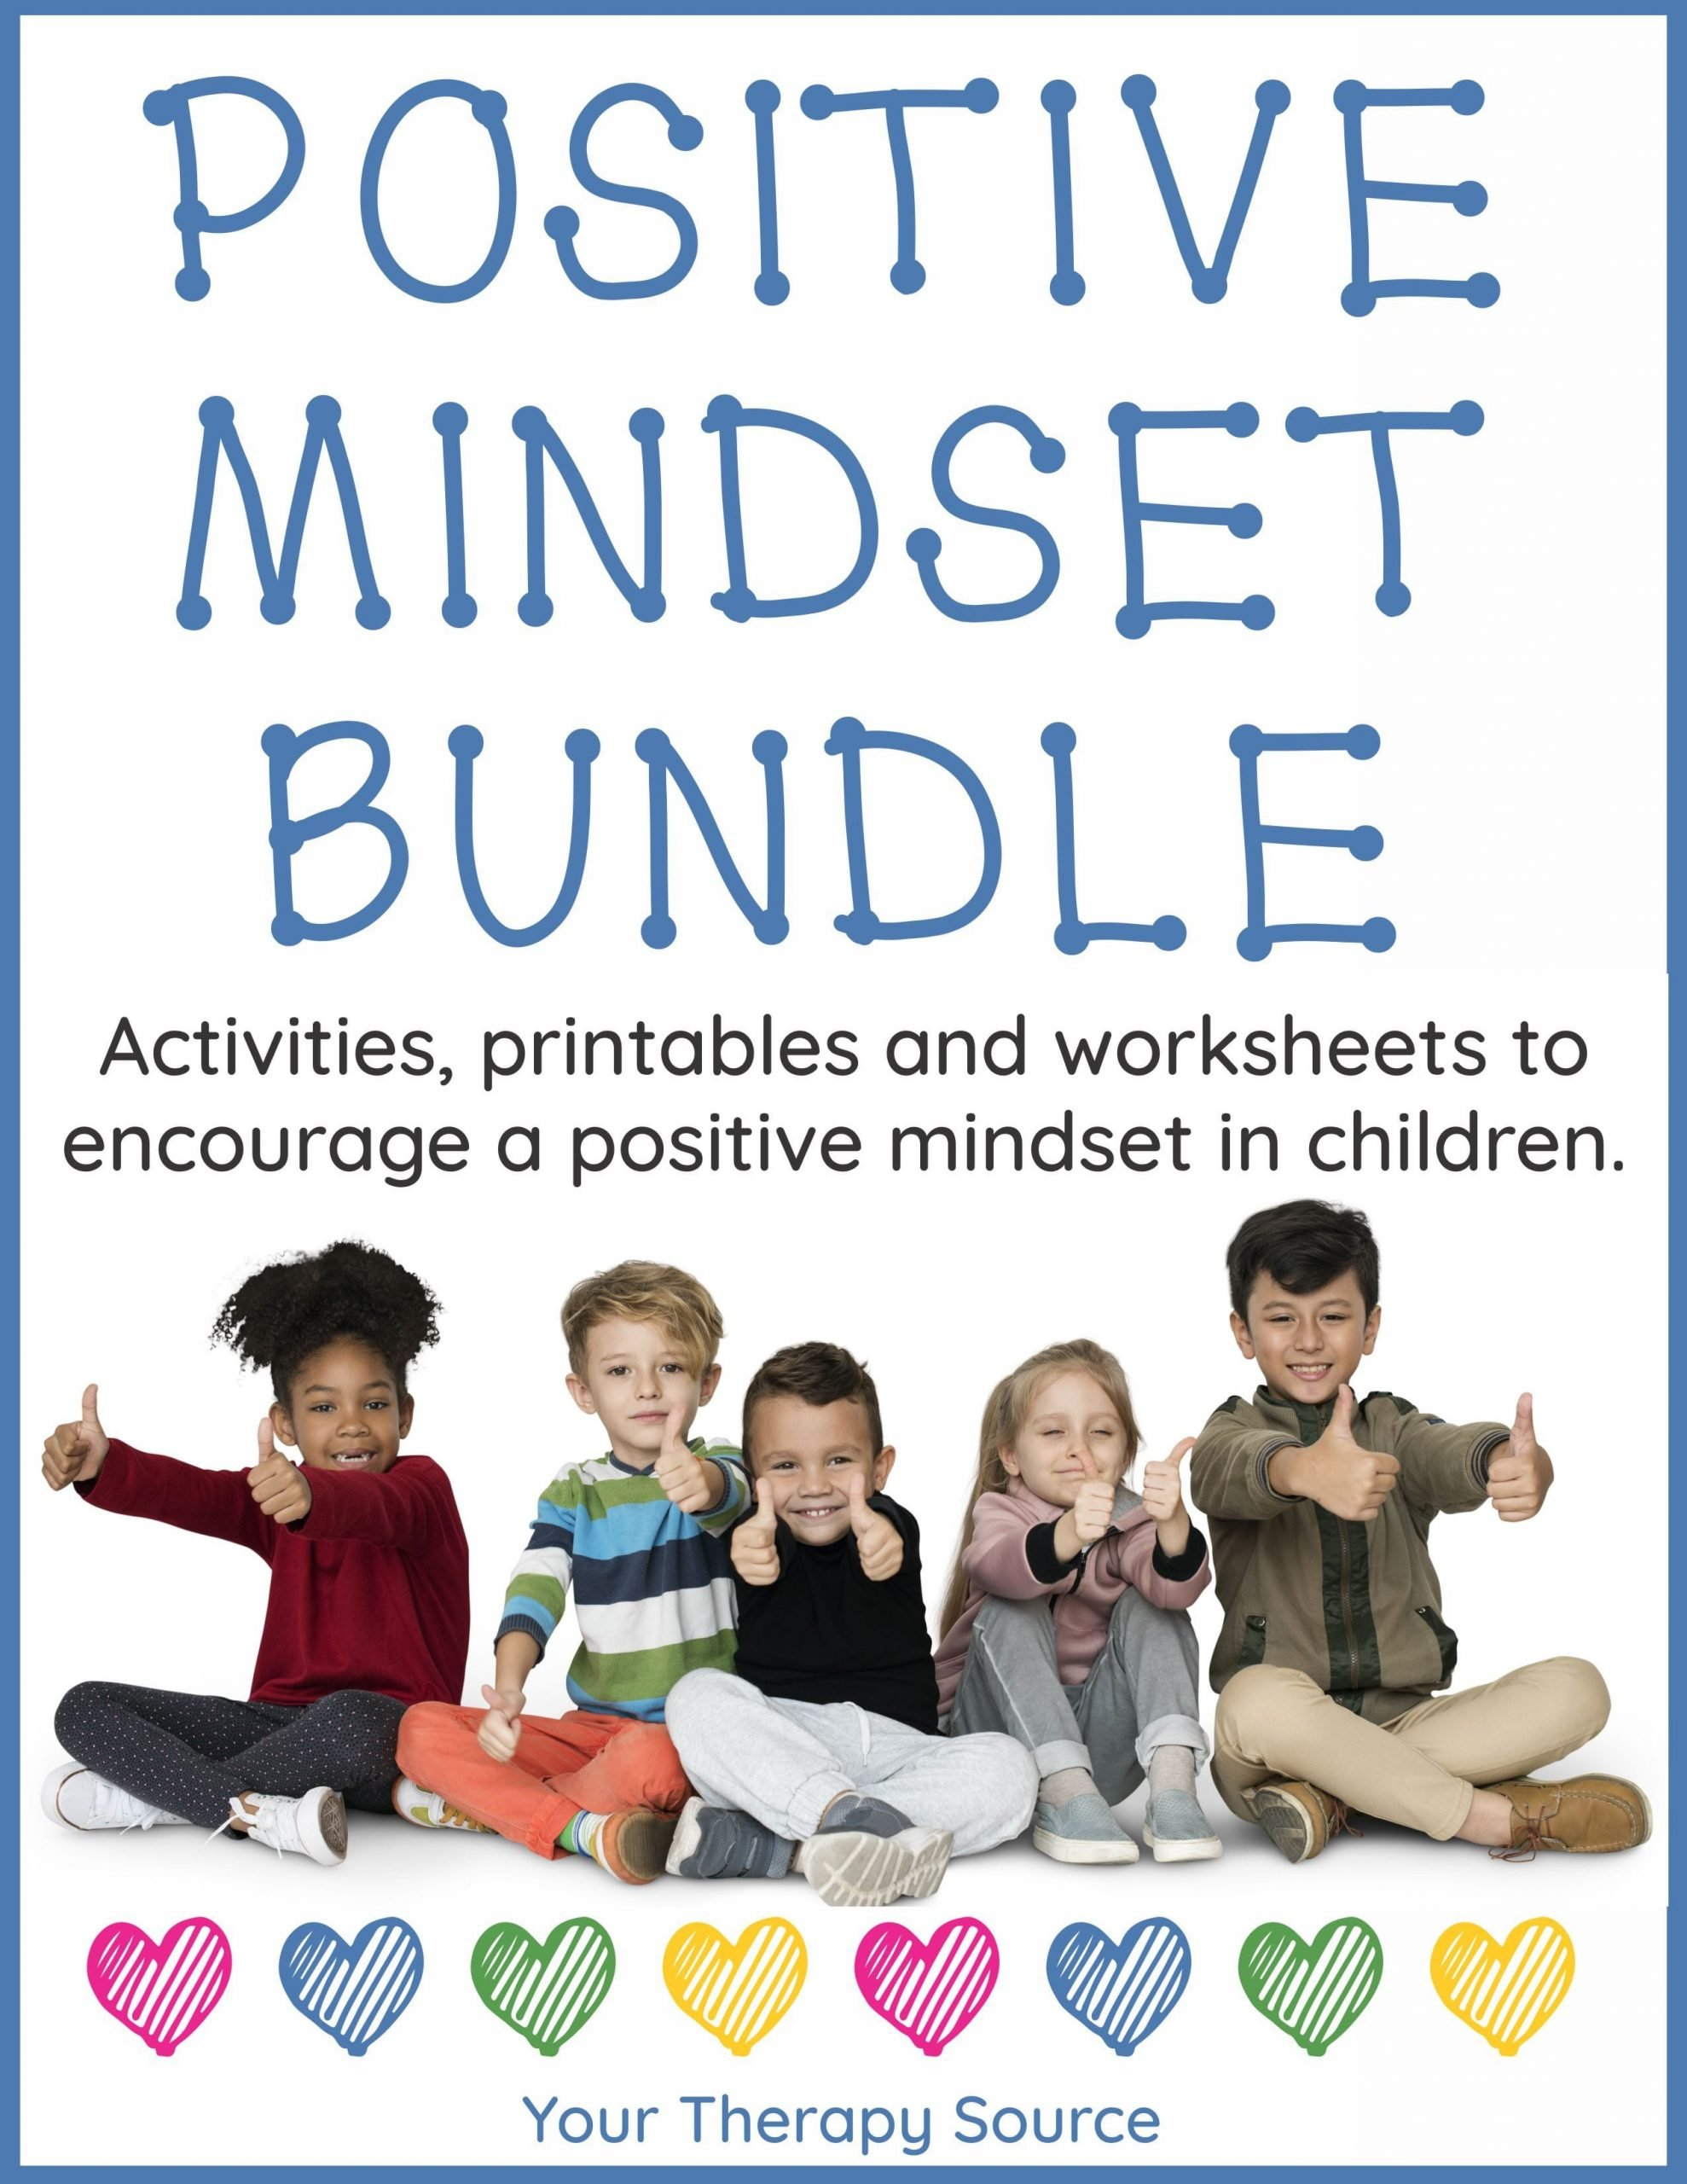 Positive attitude Activities Worksheets Positive Mindset Bundle